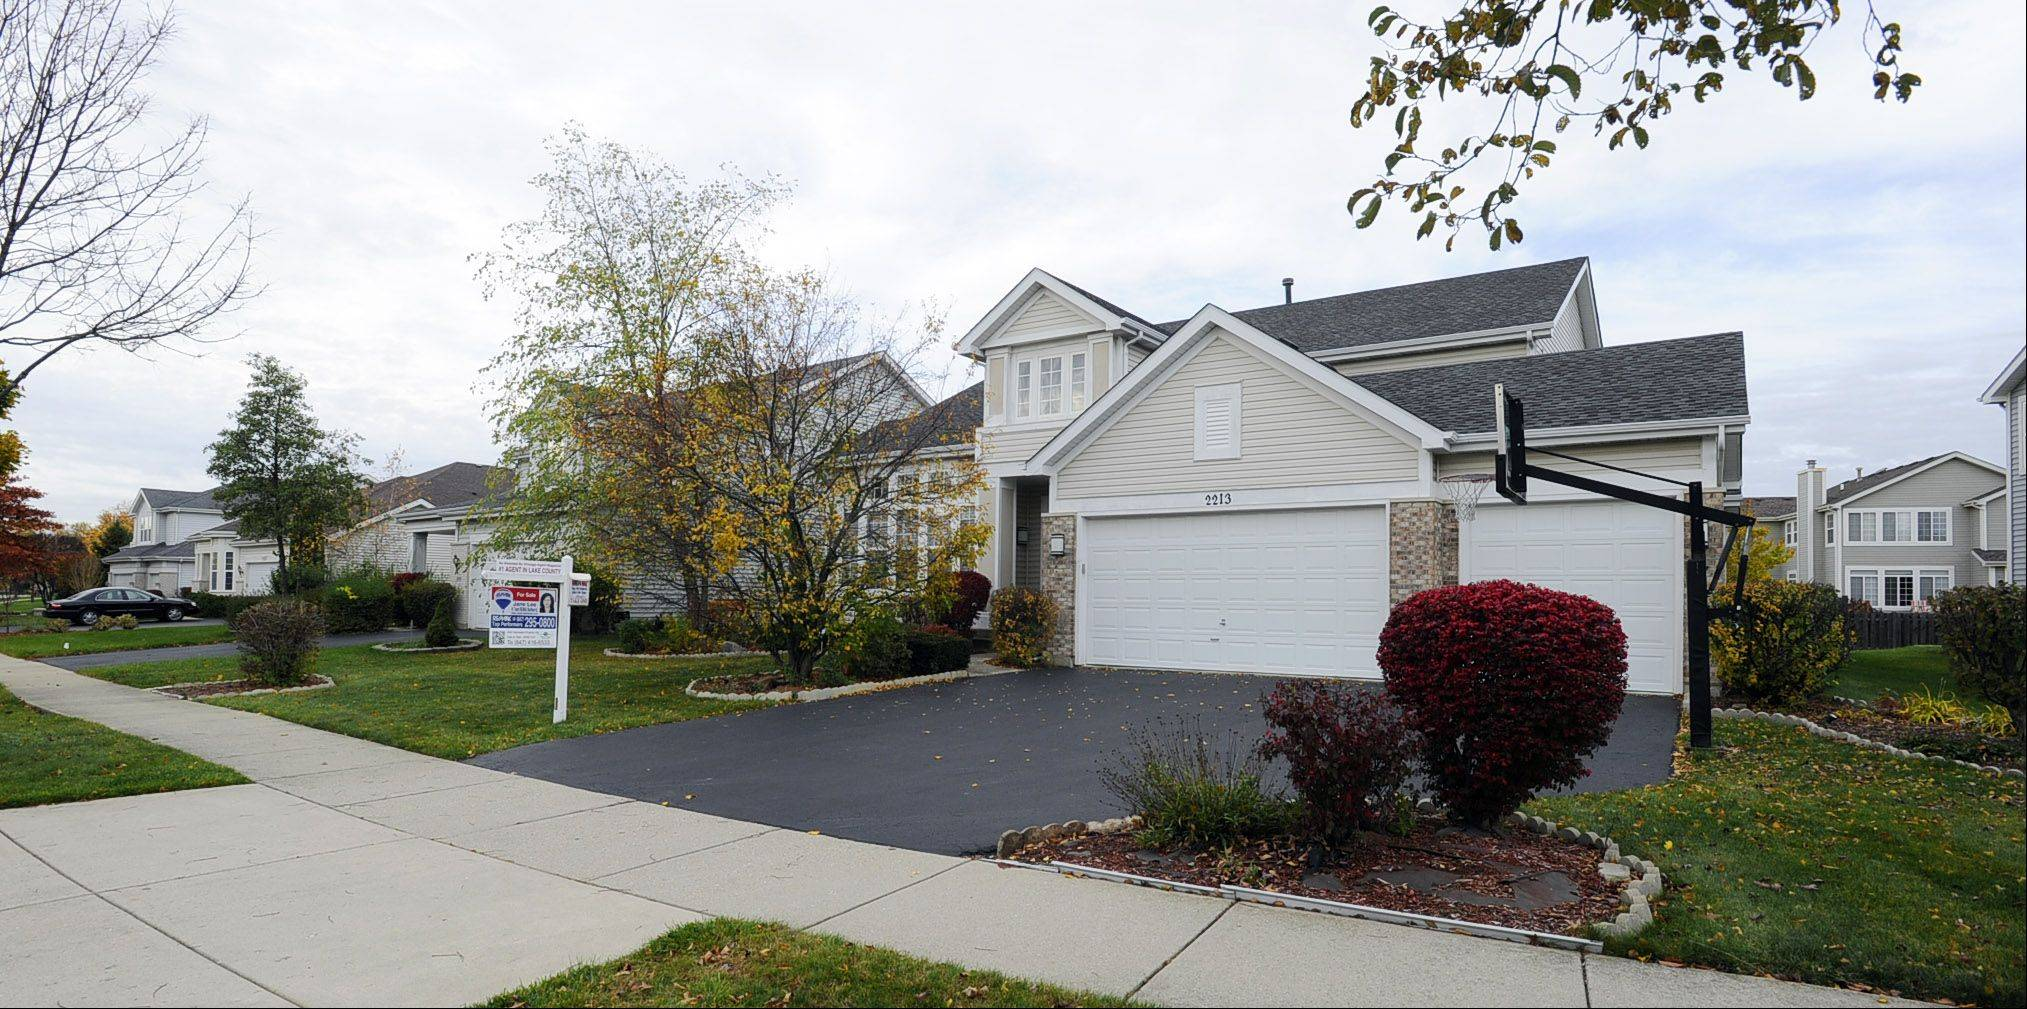 These homes on Avalon Drive in Buffalo Grove are typical of those found throughout the Mirielle subdivision.